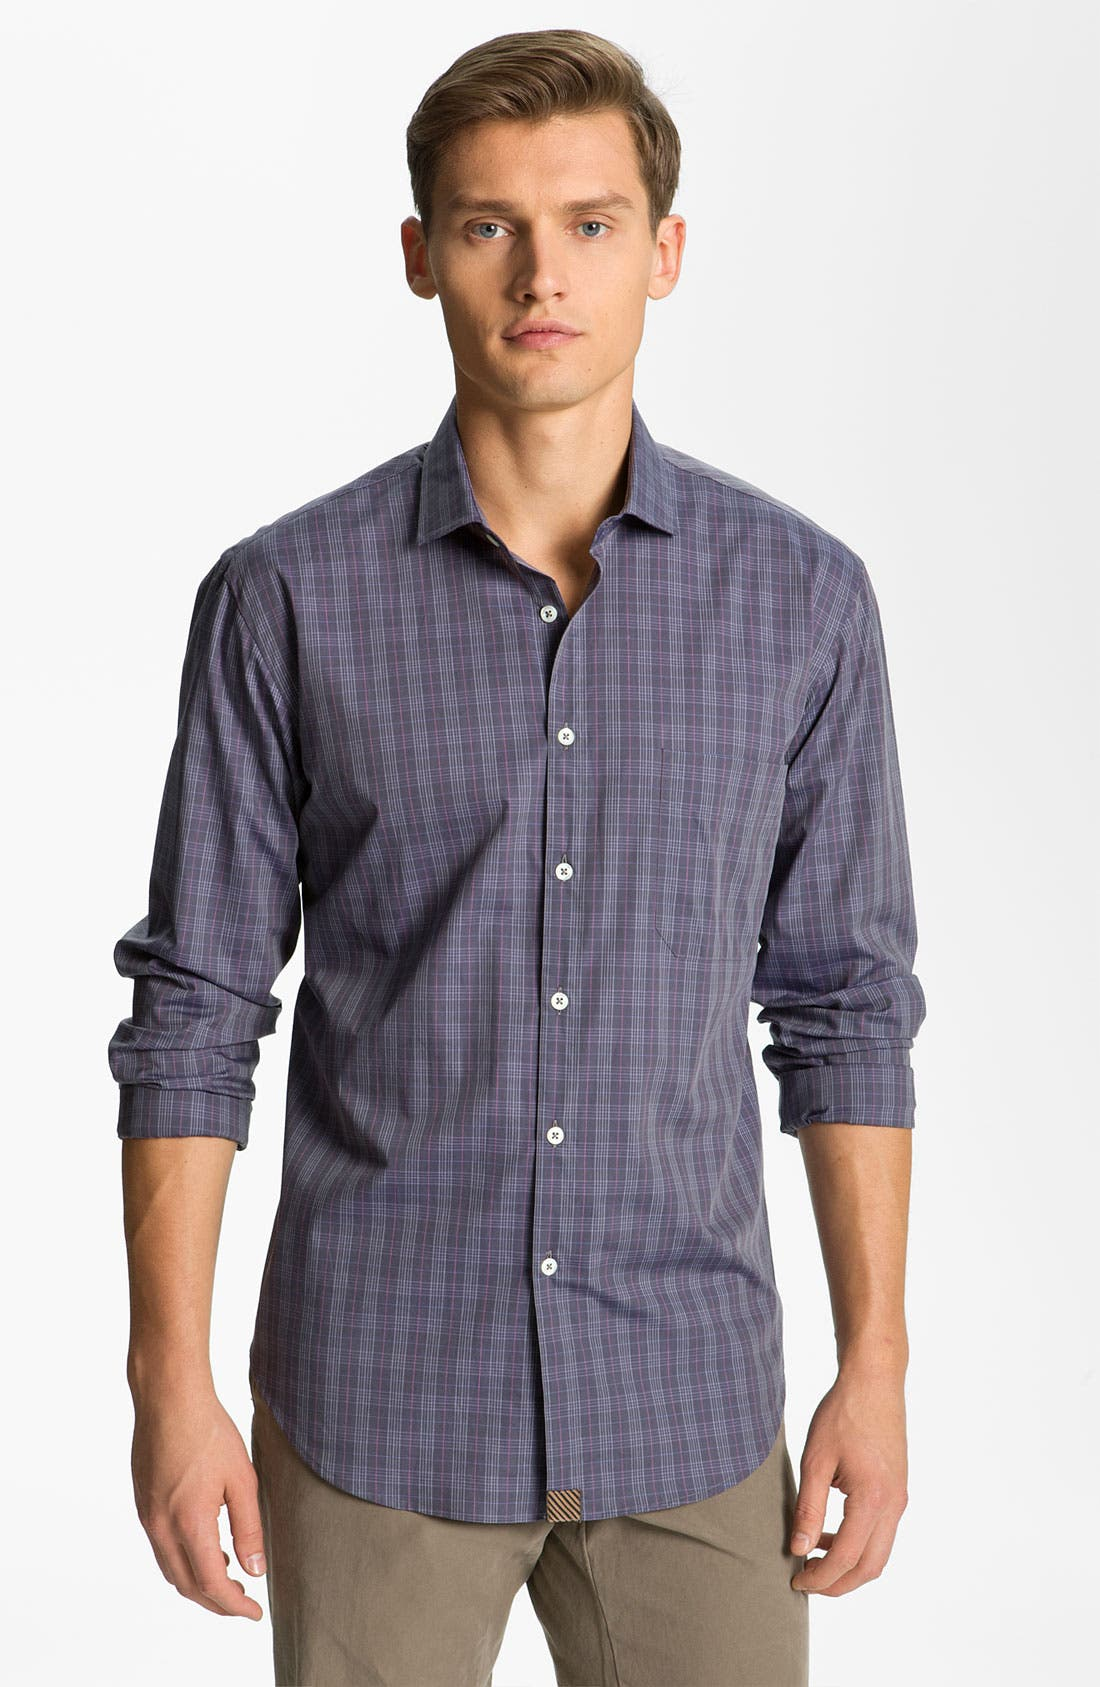 Alternate Image 1 Selected - Billy Reid Plaid Woven Shirt